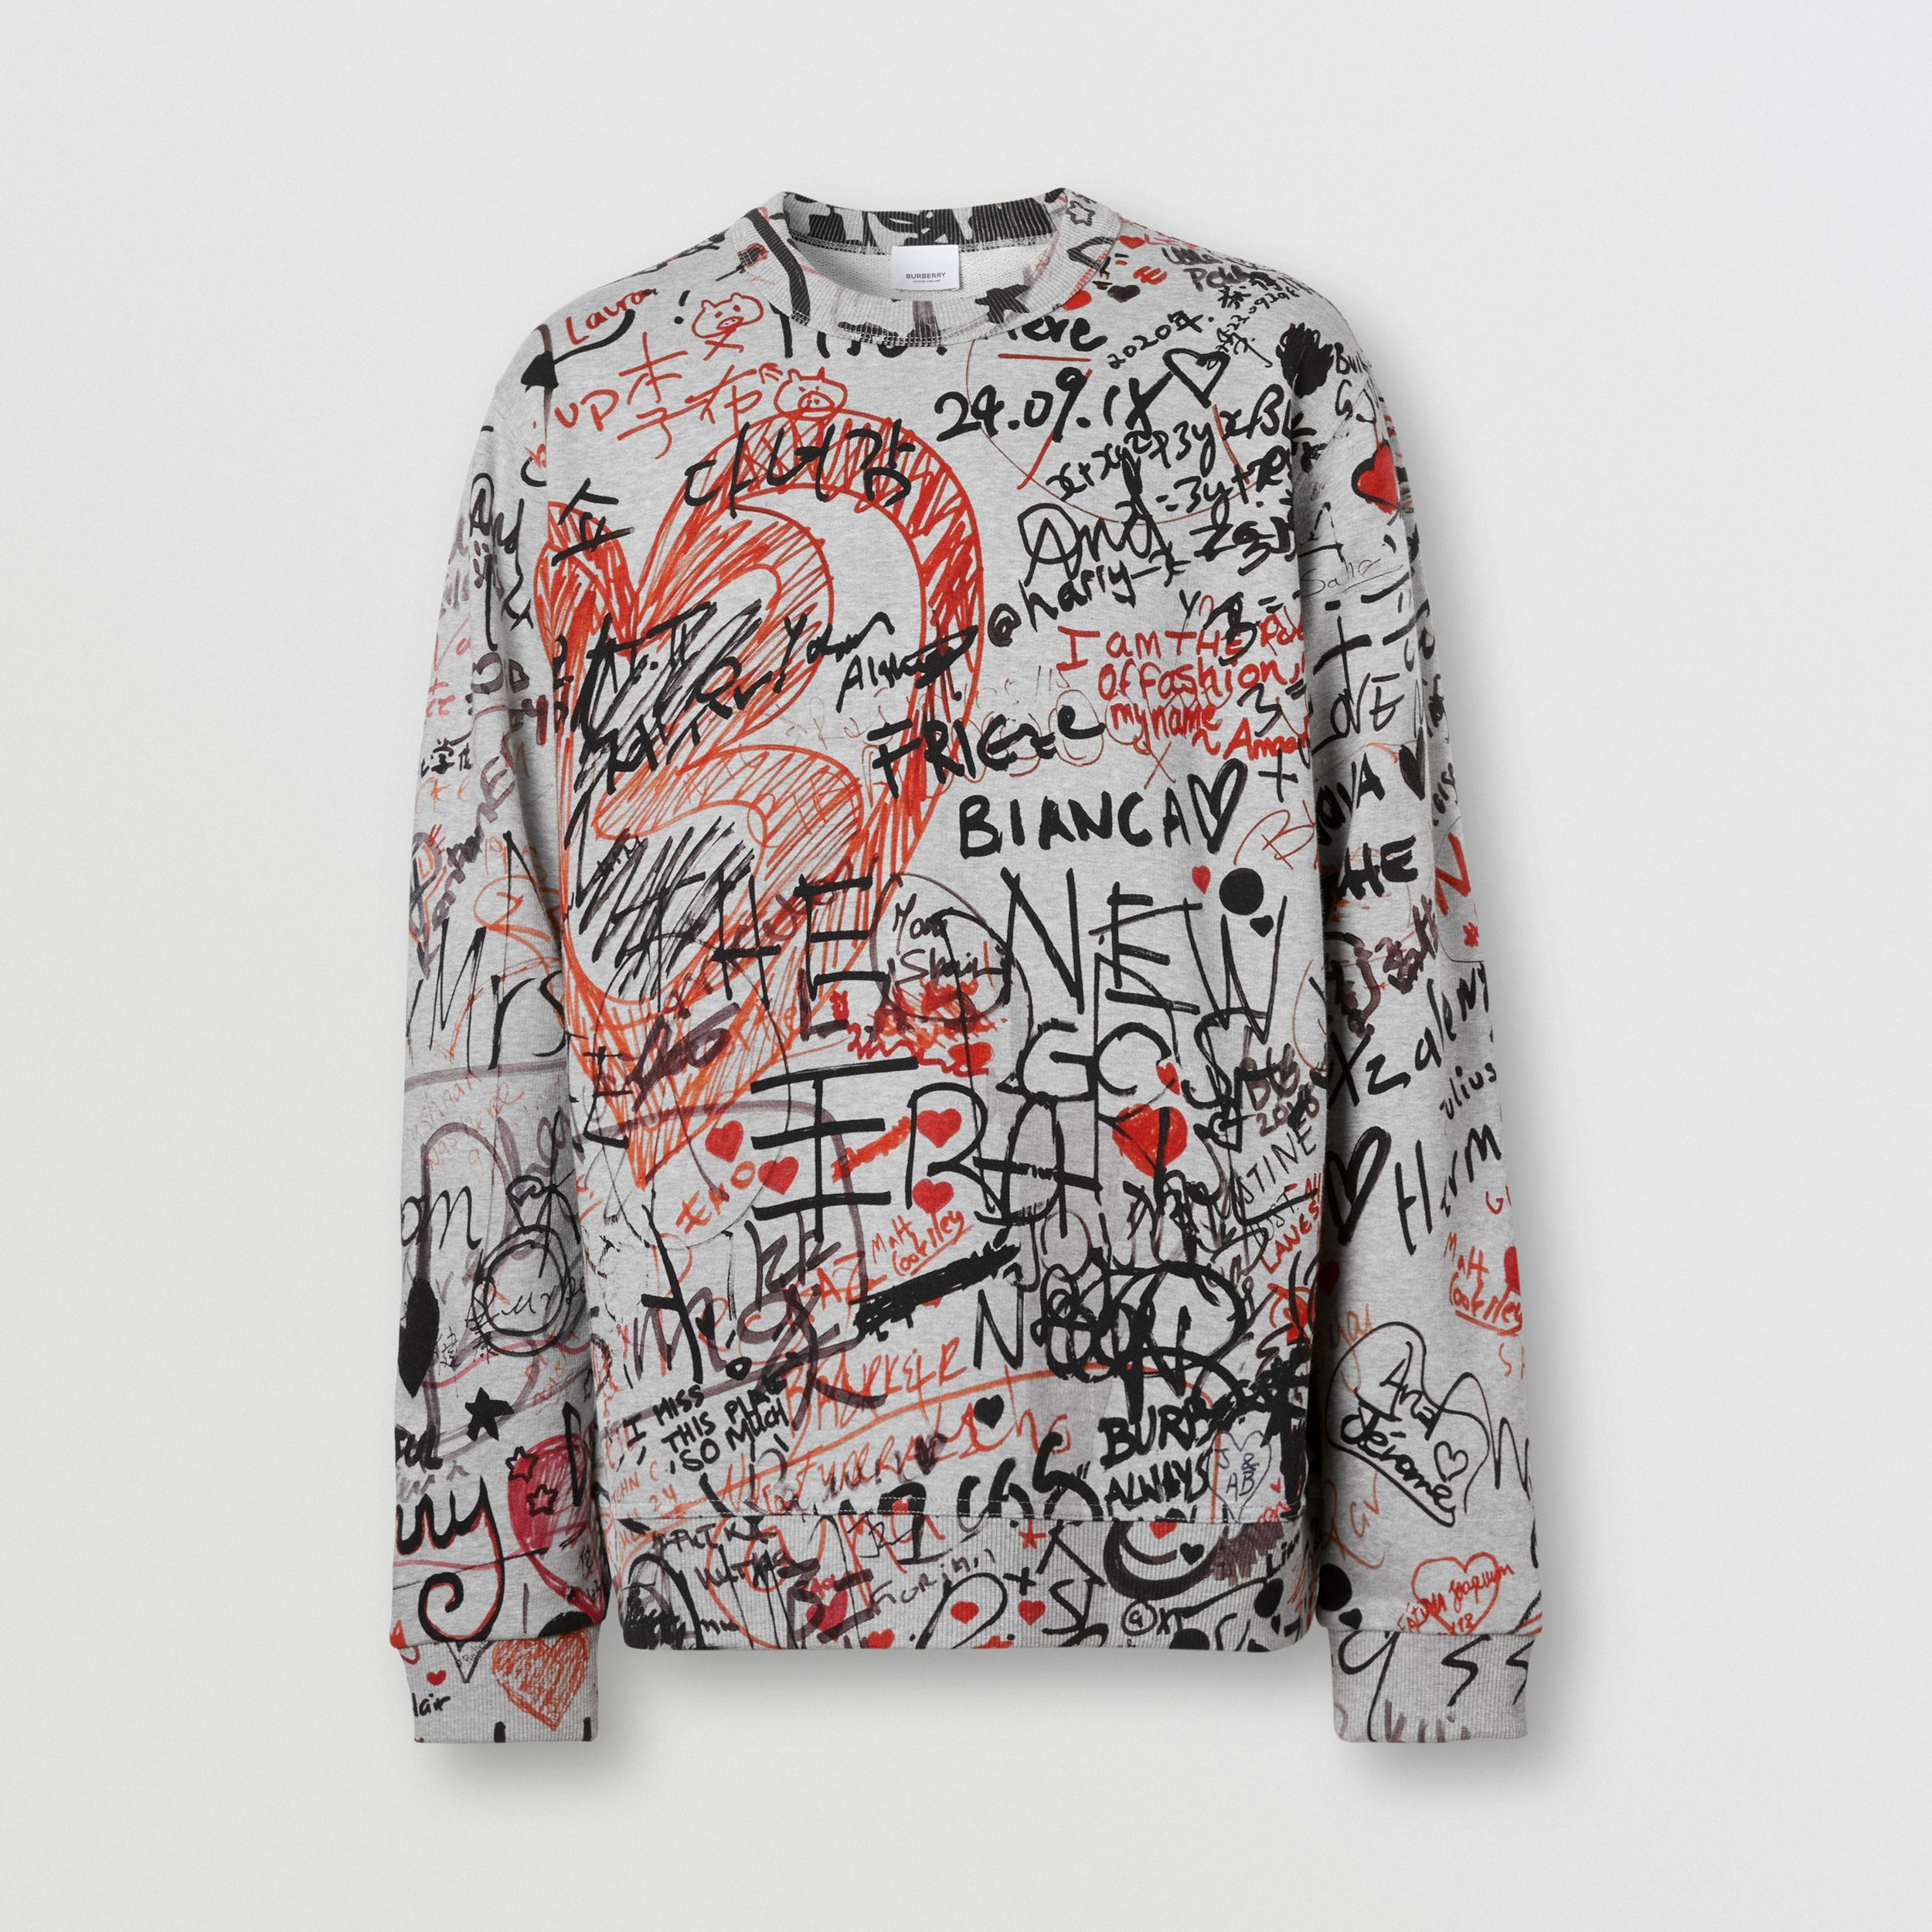 Graffiti Print Cotton Sweatshirt in Pale Grey Melange - Men | Burberry - 4